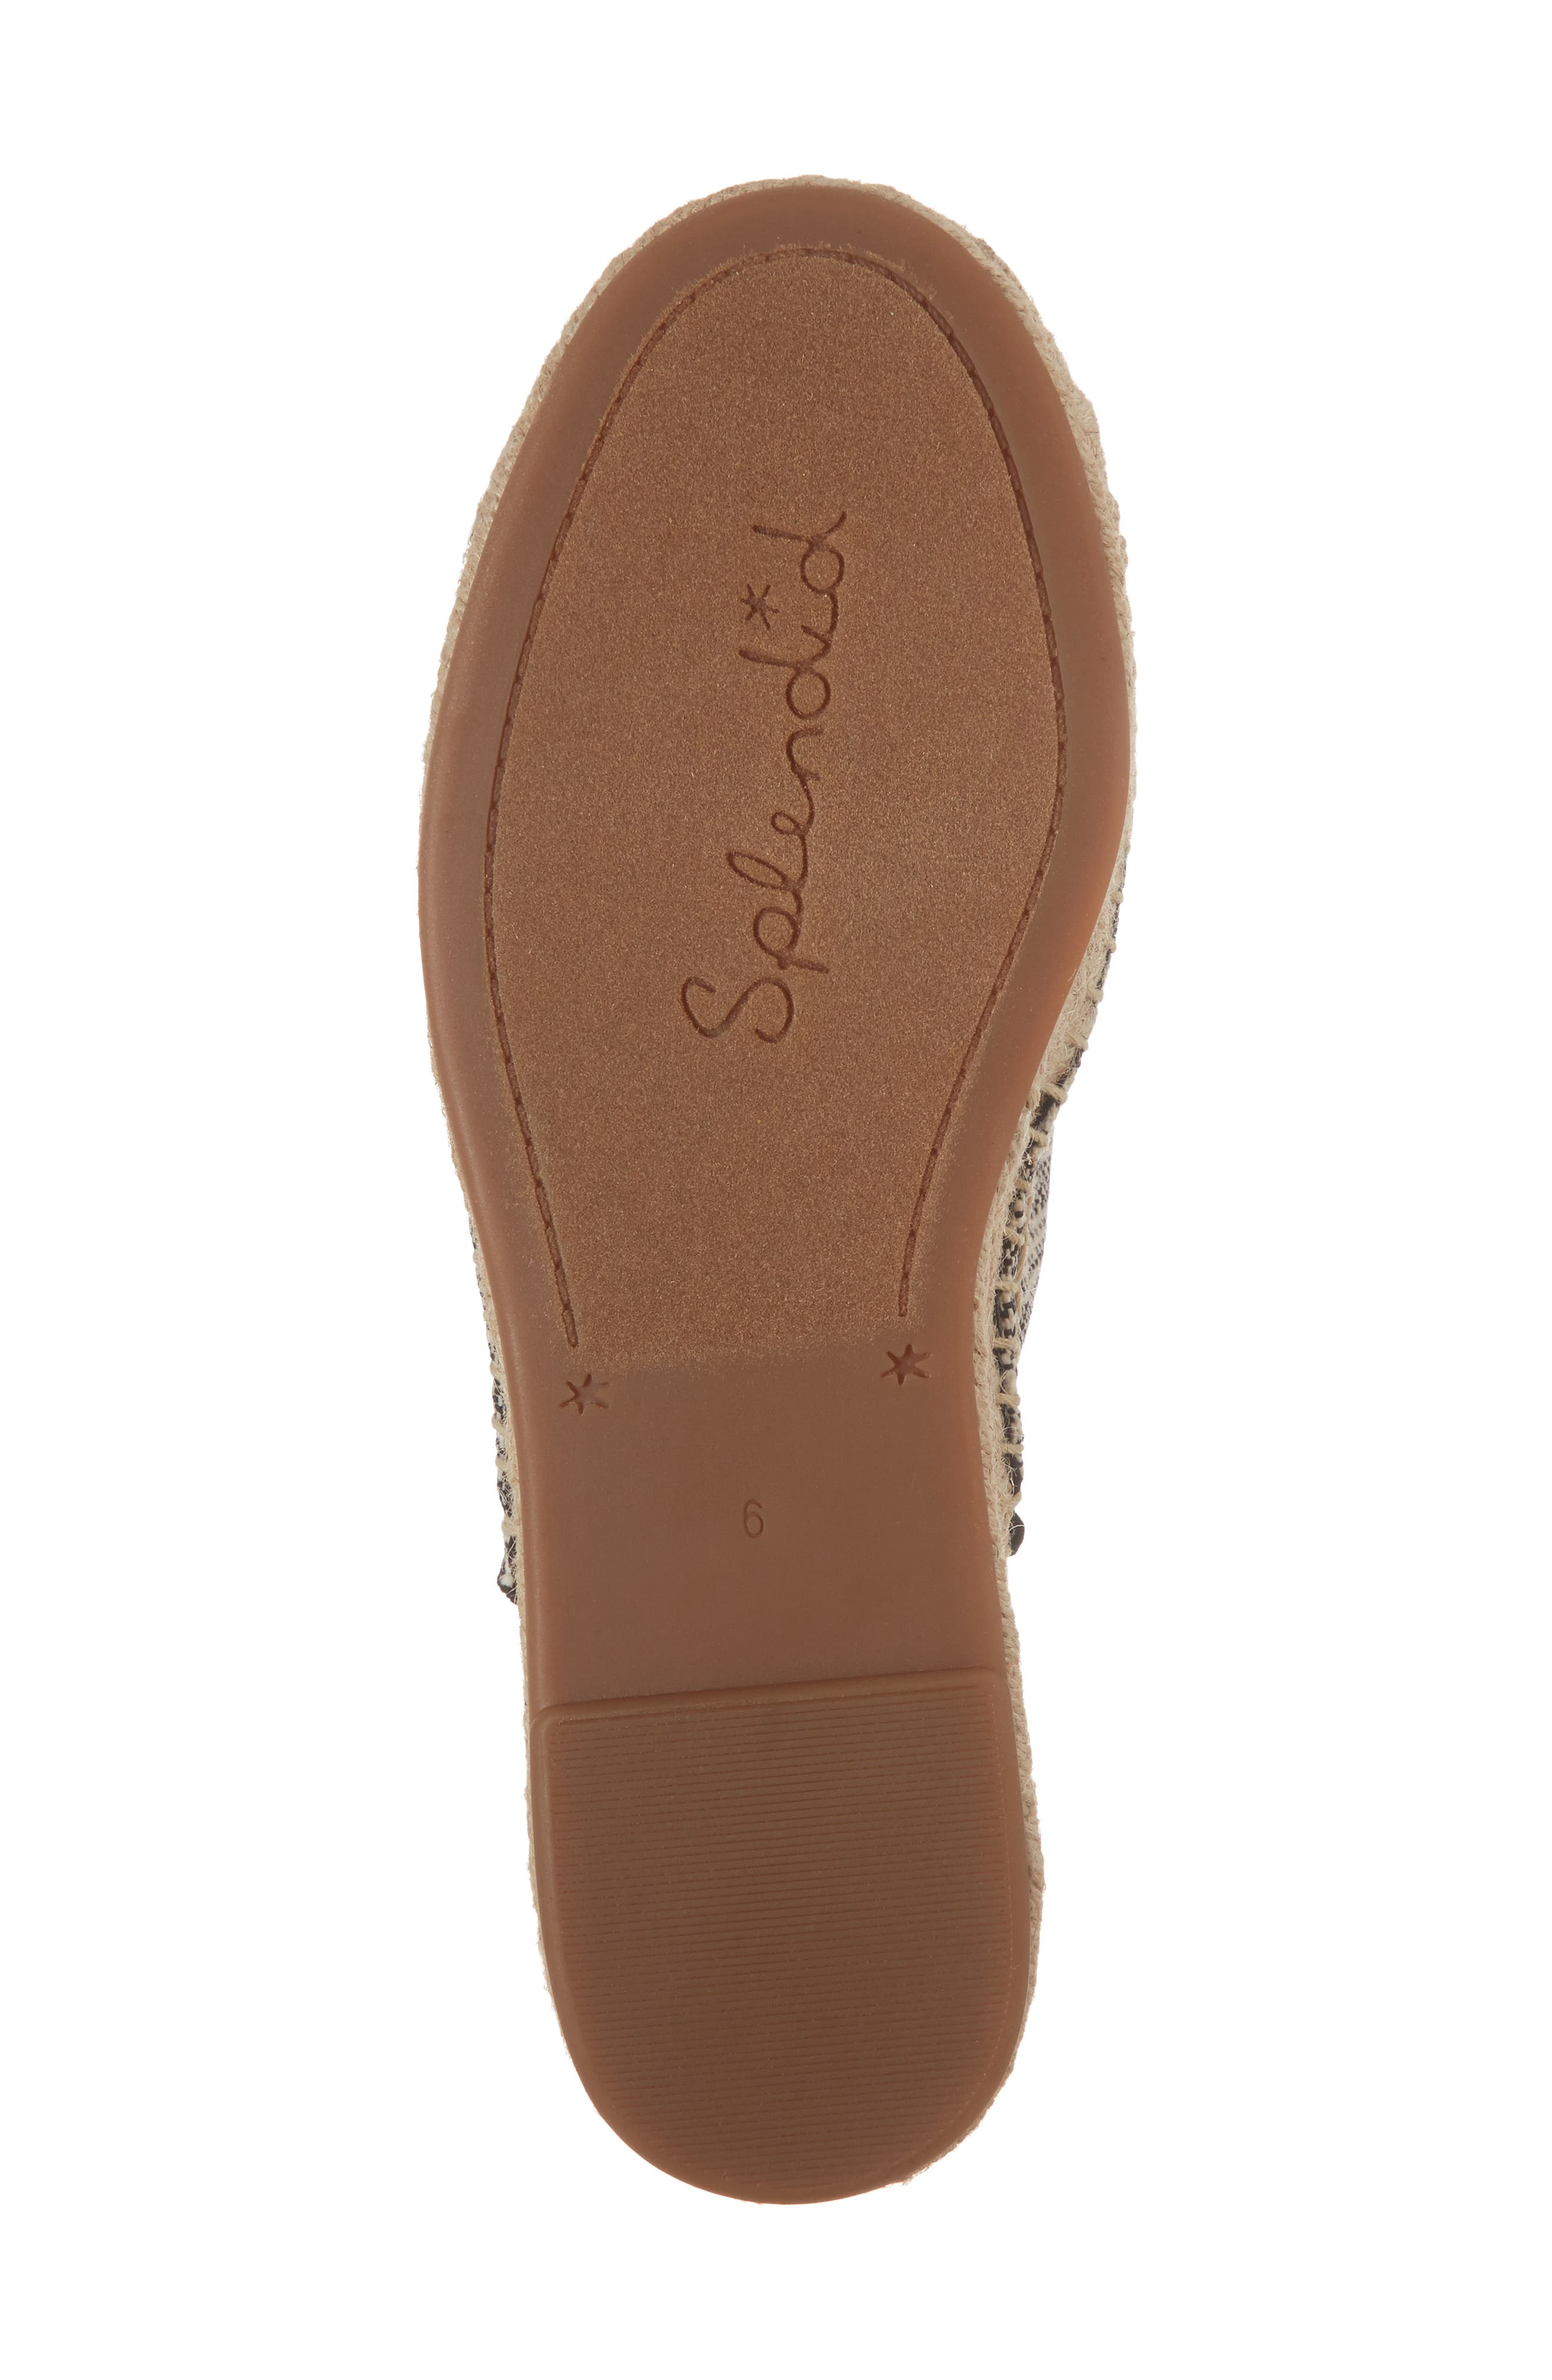 Franci Espadrille Slide Sandal,                             Alternate thumbnail 6, color,                             BLACK/ NATURAL FABRIC